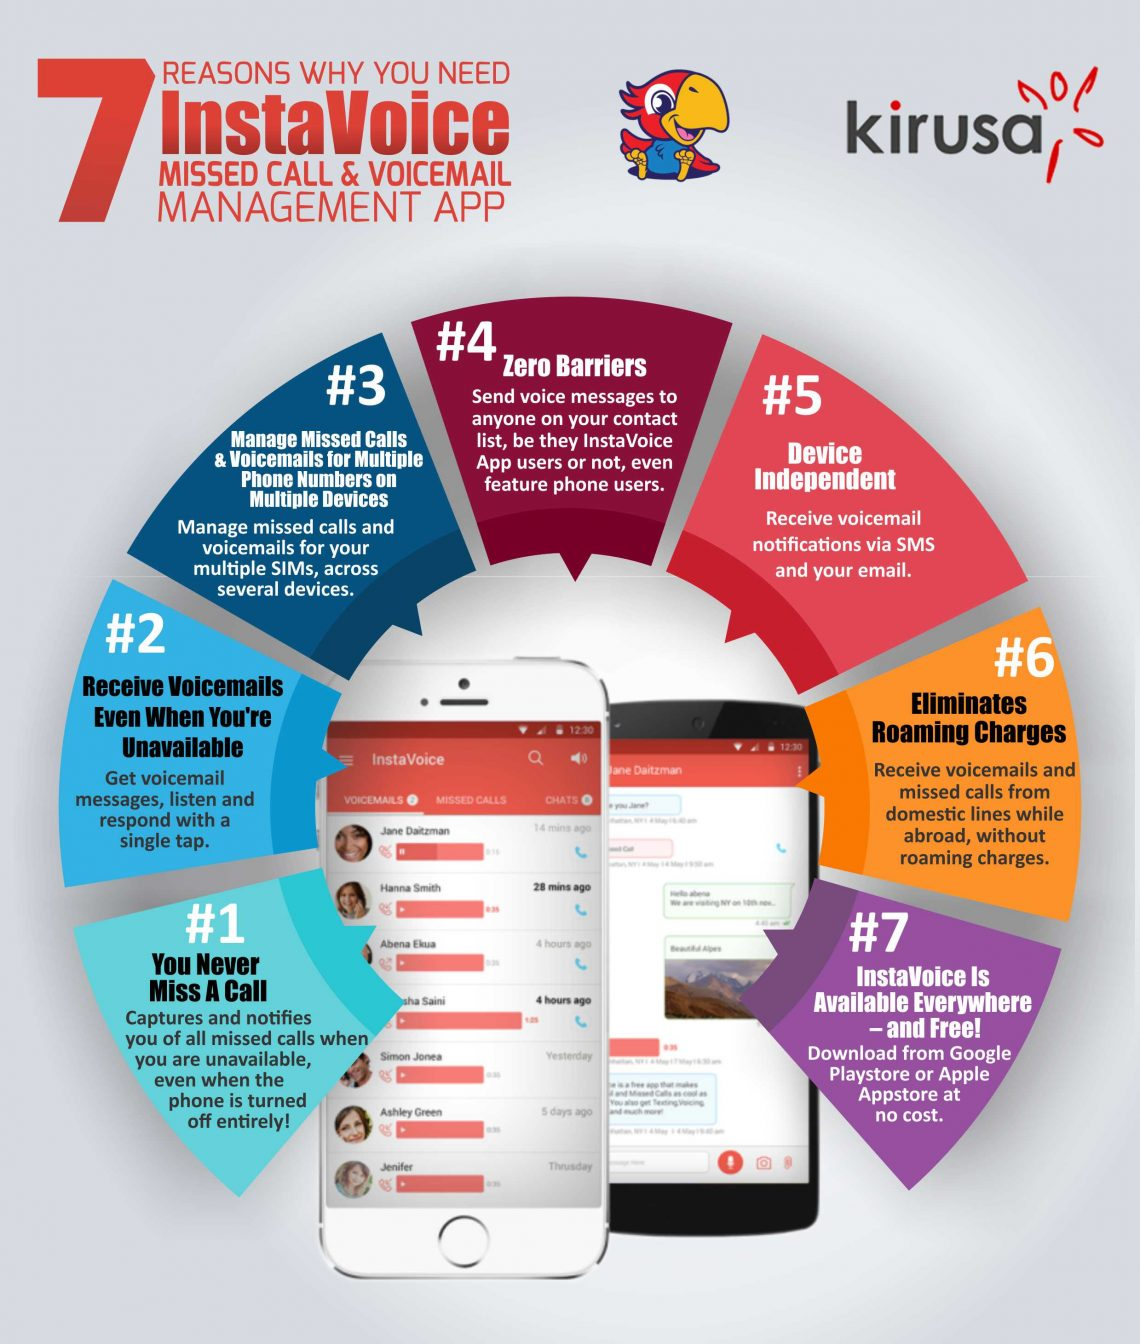 7 Reasons Why You Need Instavoice Missed Call Voicemail Management